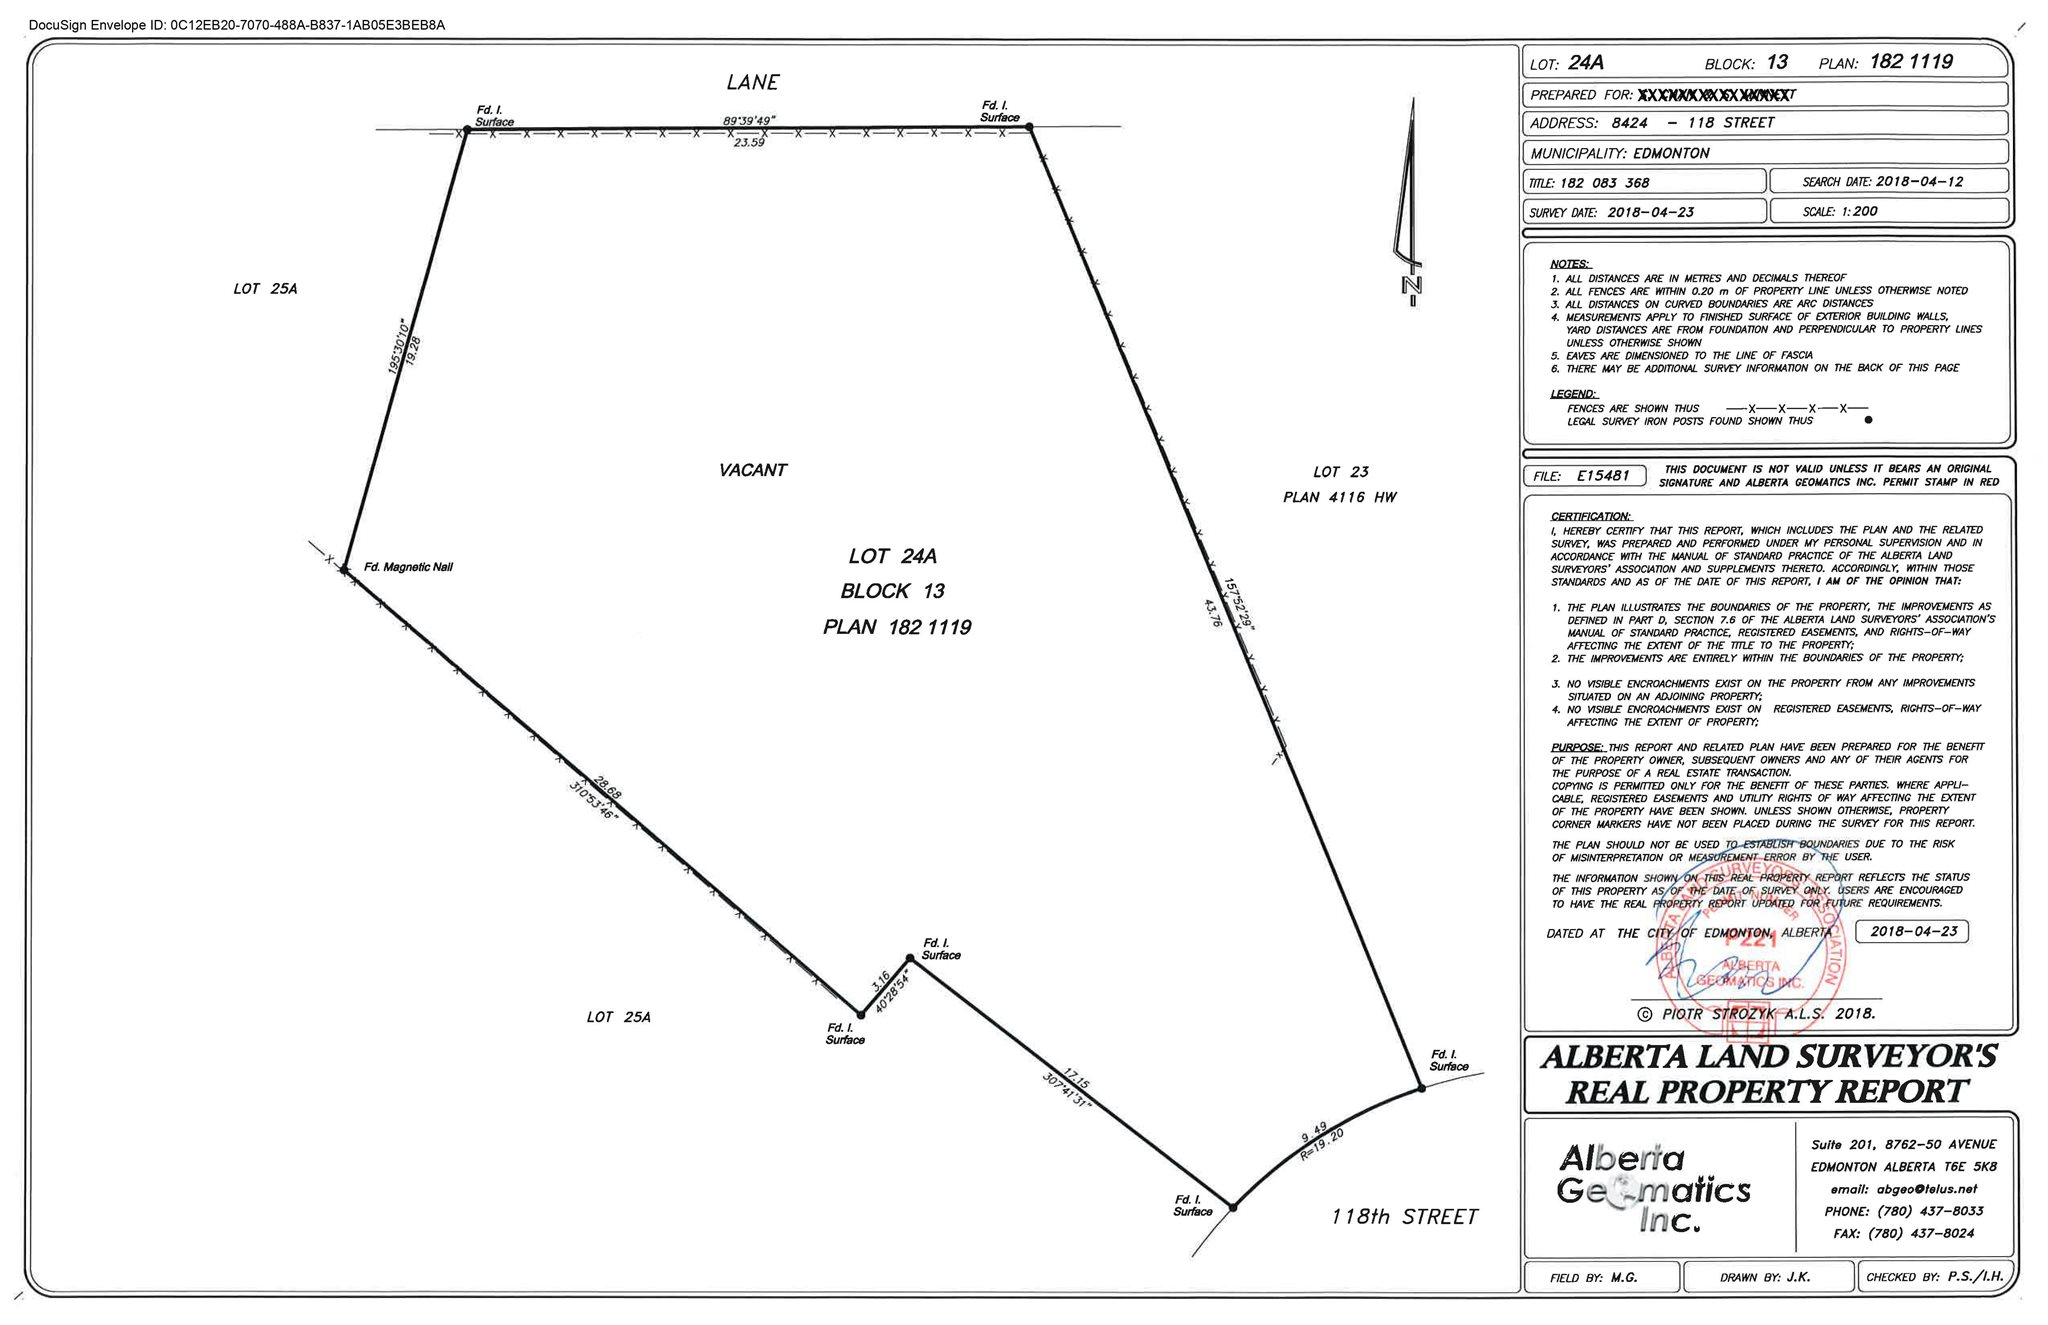 Rare Opportunity!  Have you been trying to find the perfect infill lot, just the right size coupled with just the right location? Imagine your dream home on this incredible lot that is well over 1/4 of an ACRE!!  Tucked away in desirable WINDSOR PARK immediately to the West of the University of Alberta, this checks ALL the boxes.  Easy walk to University of Alberta campus, the U of A Hospital, Cross Cancer Institute, the River Valley and Hawrelak Park! You can enjoy all the perks of living in the same community where you work and play.  10 minute walk  to the LRT for simple commute to the downtown core, top rated schools are minutes away in this community that places high value on excellence in education. The owner has done all the leg work in designing and permitting the perfect family home with ATTACHED garage! Provision of these plans is a negotiable item.